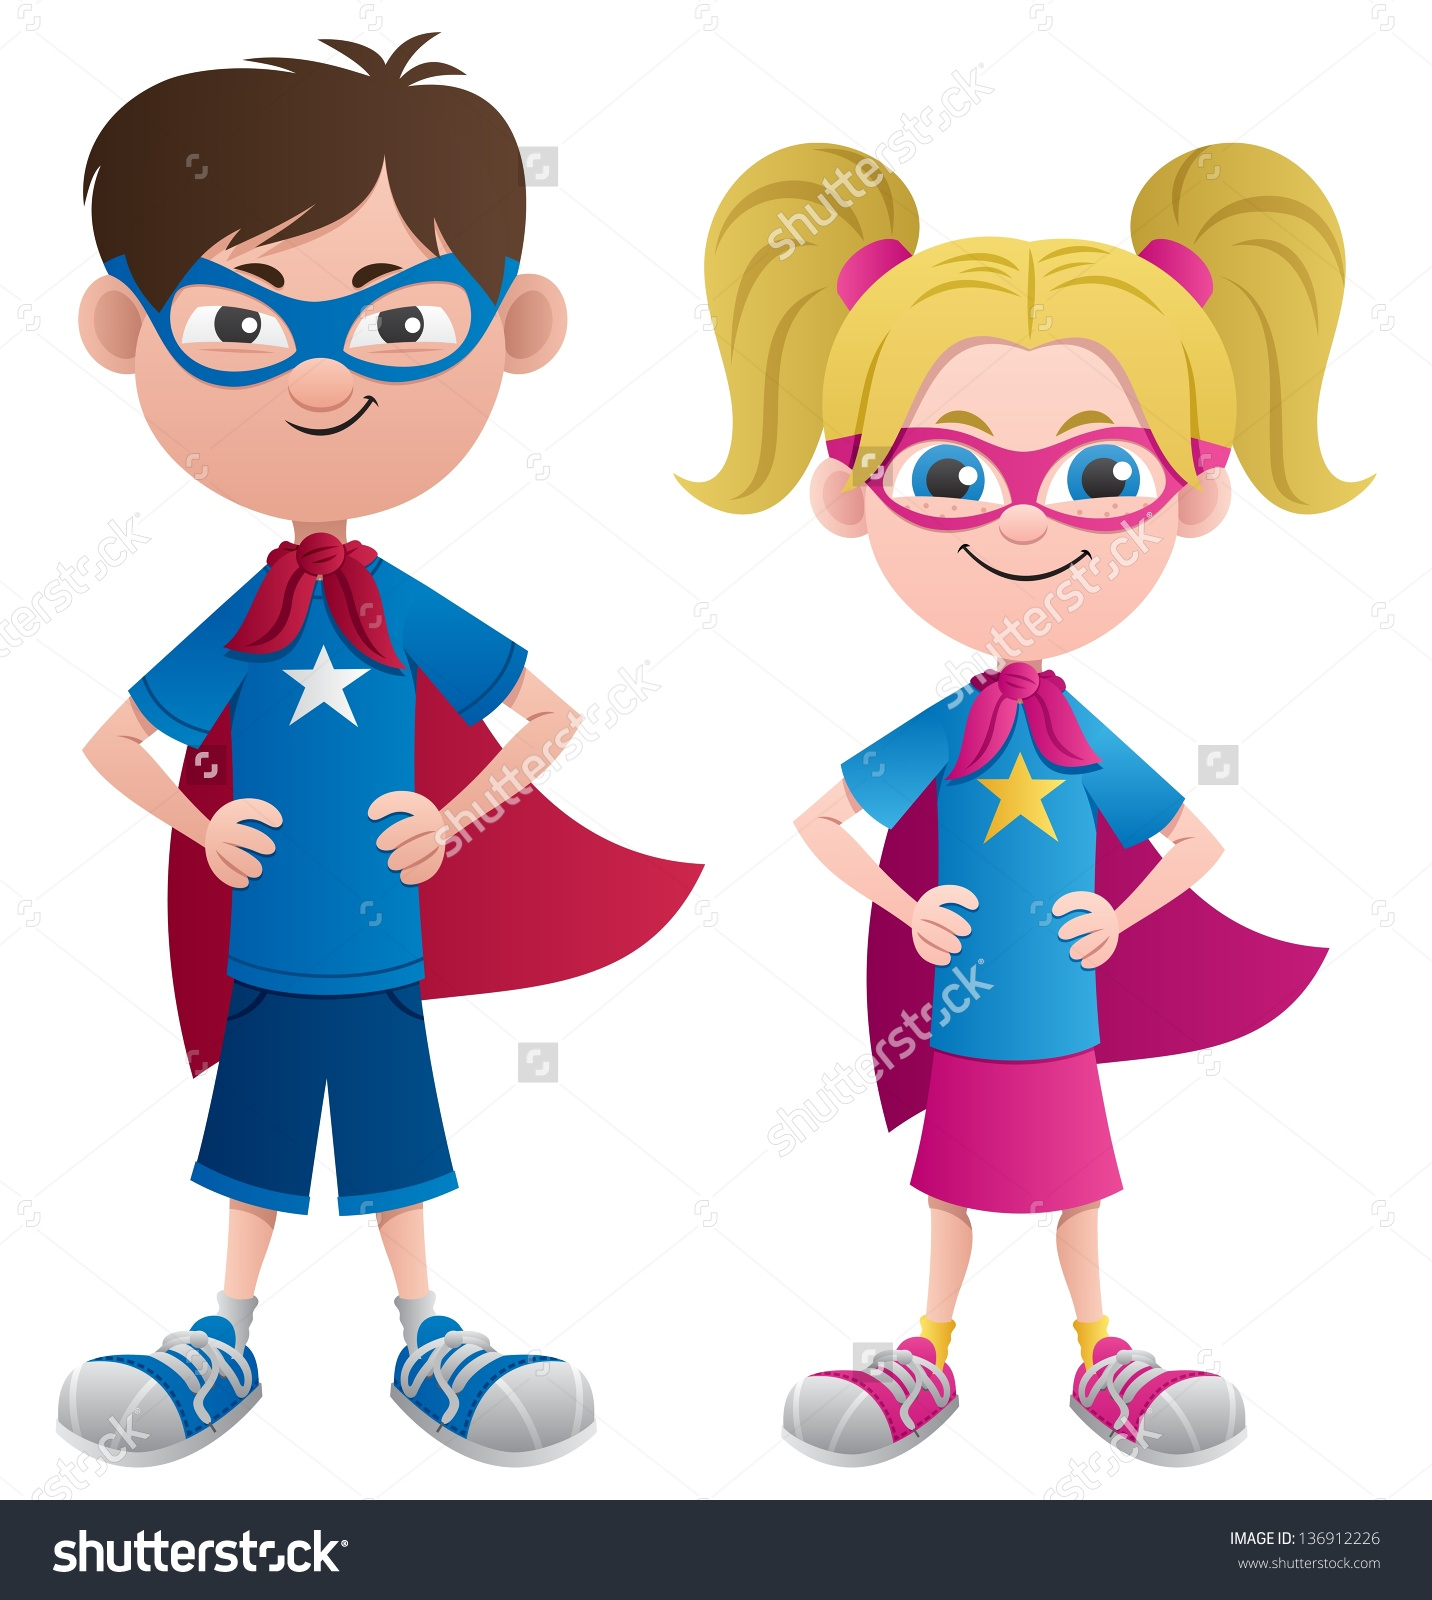 Illustration Of Kids Playing Dress Up Royalty Free Cliparts, Vectors, And  Stock Illustration. Image 1780190.